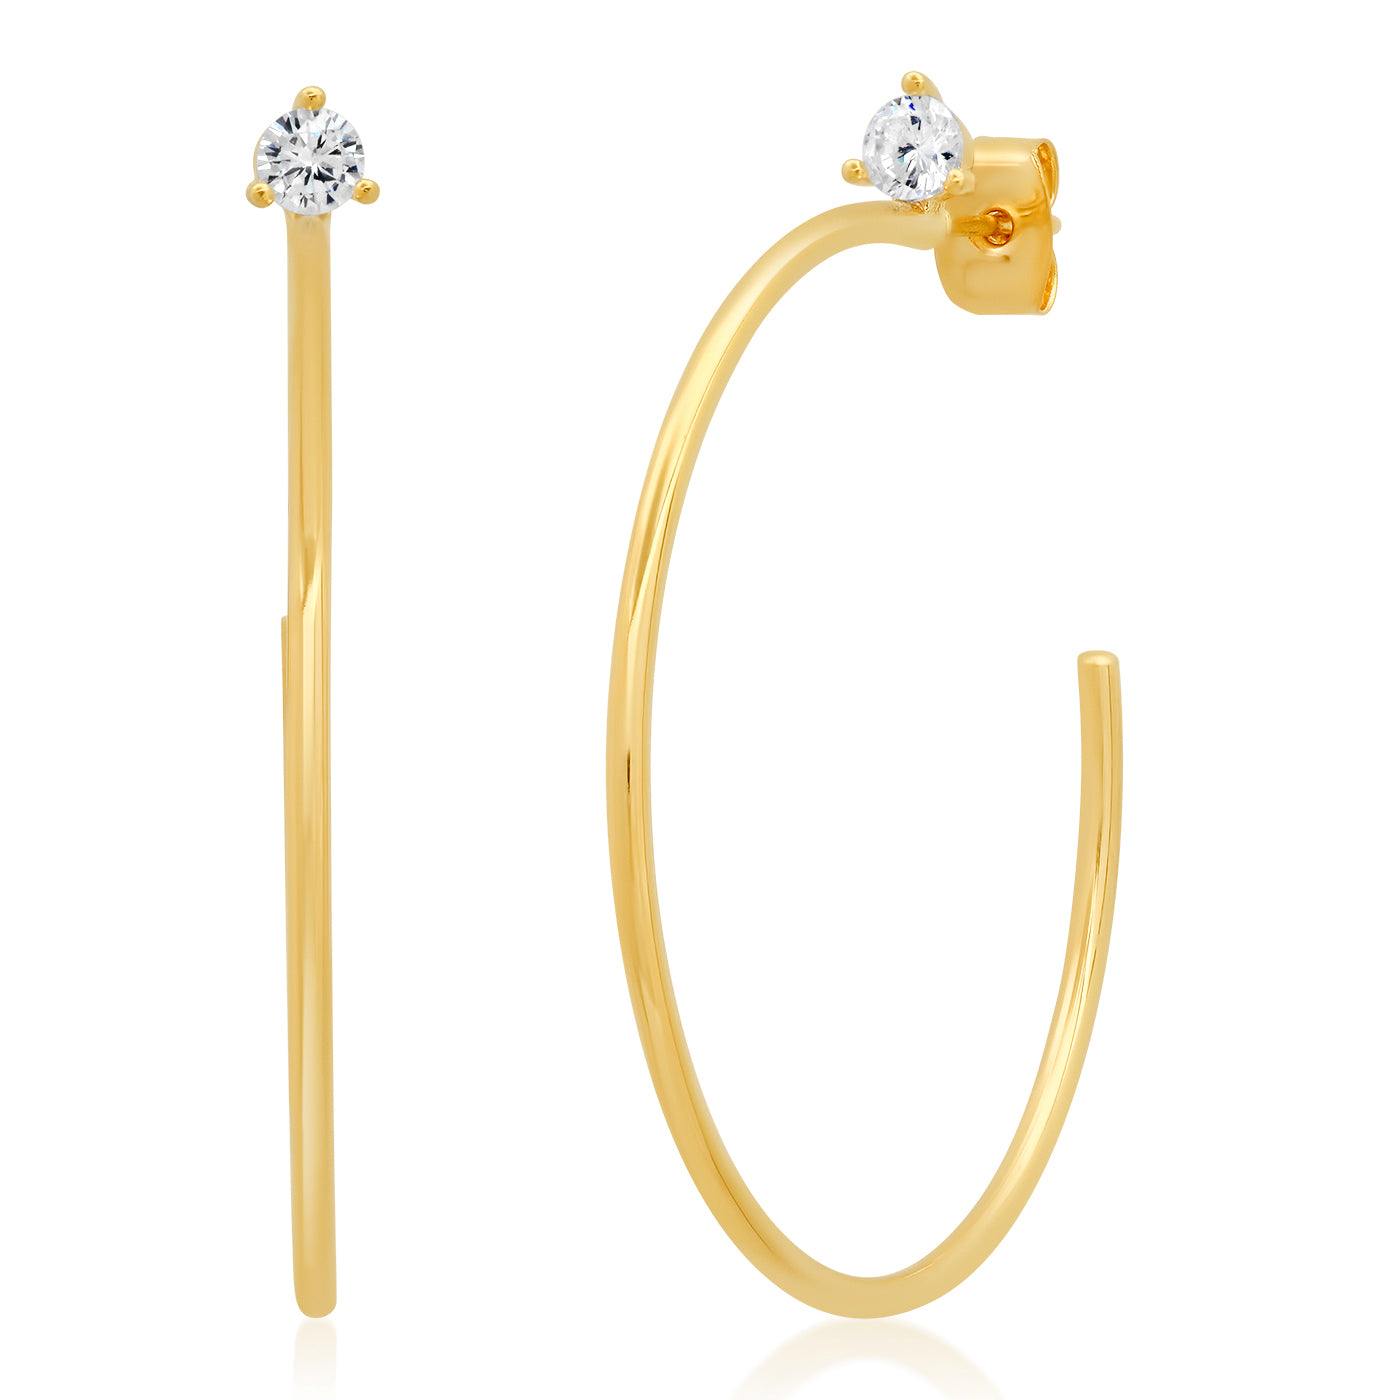 Medium Thin Gold Hoops with CZ Accents